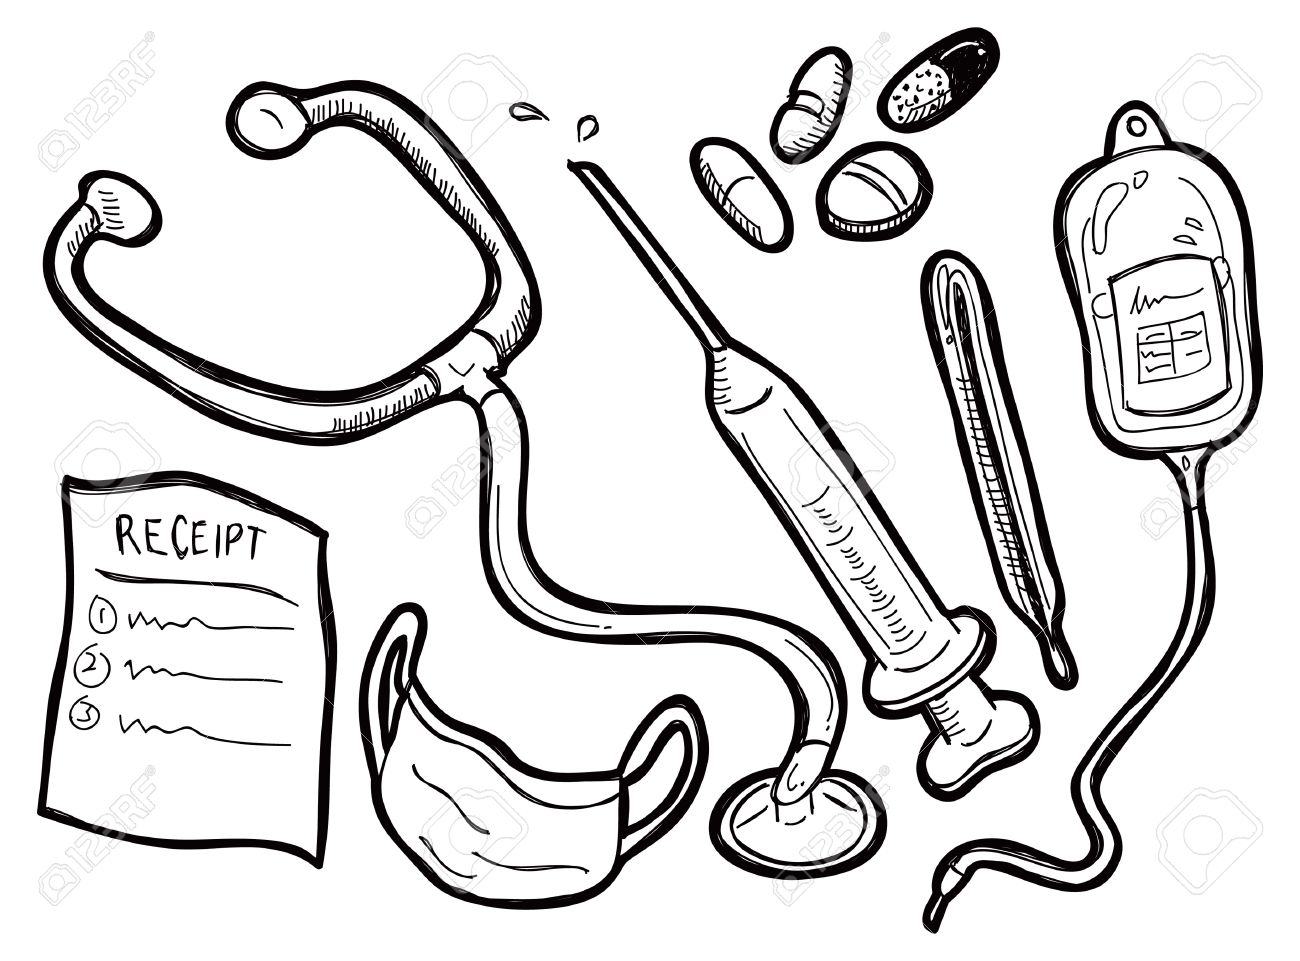 Medical Supplies Clipart 20 Free Cliparts